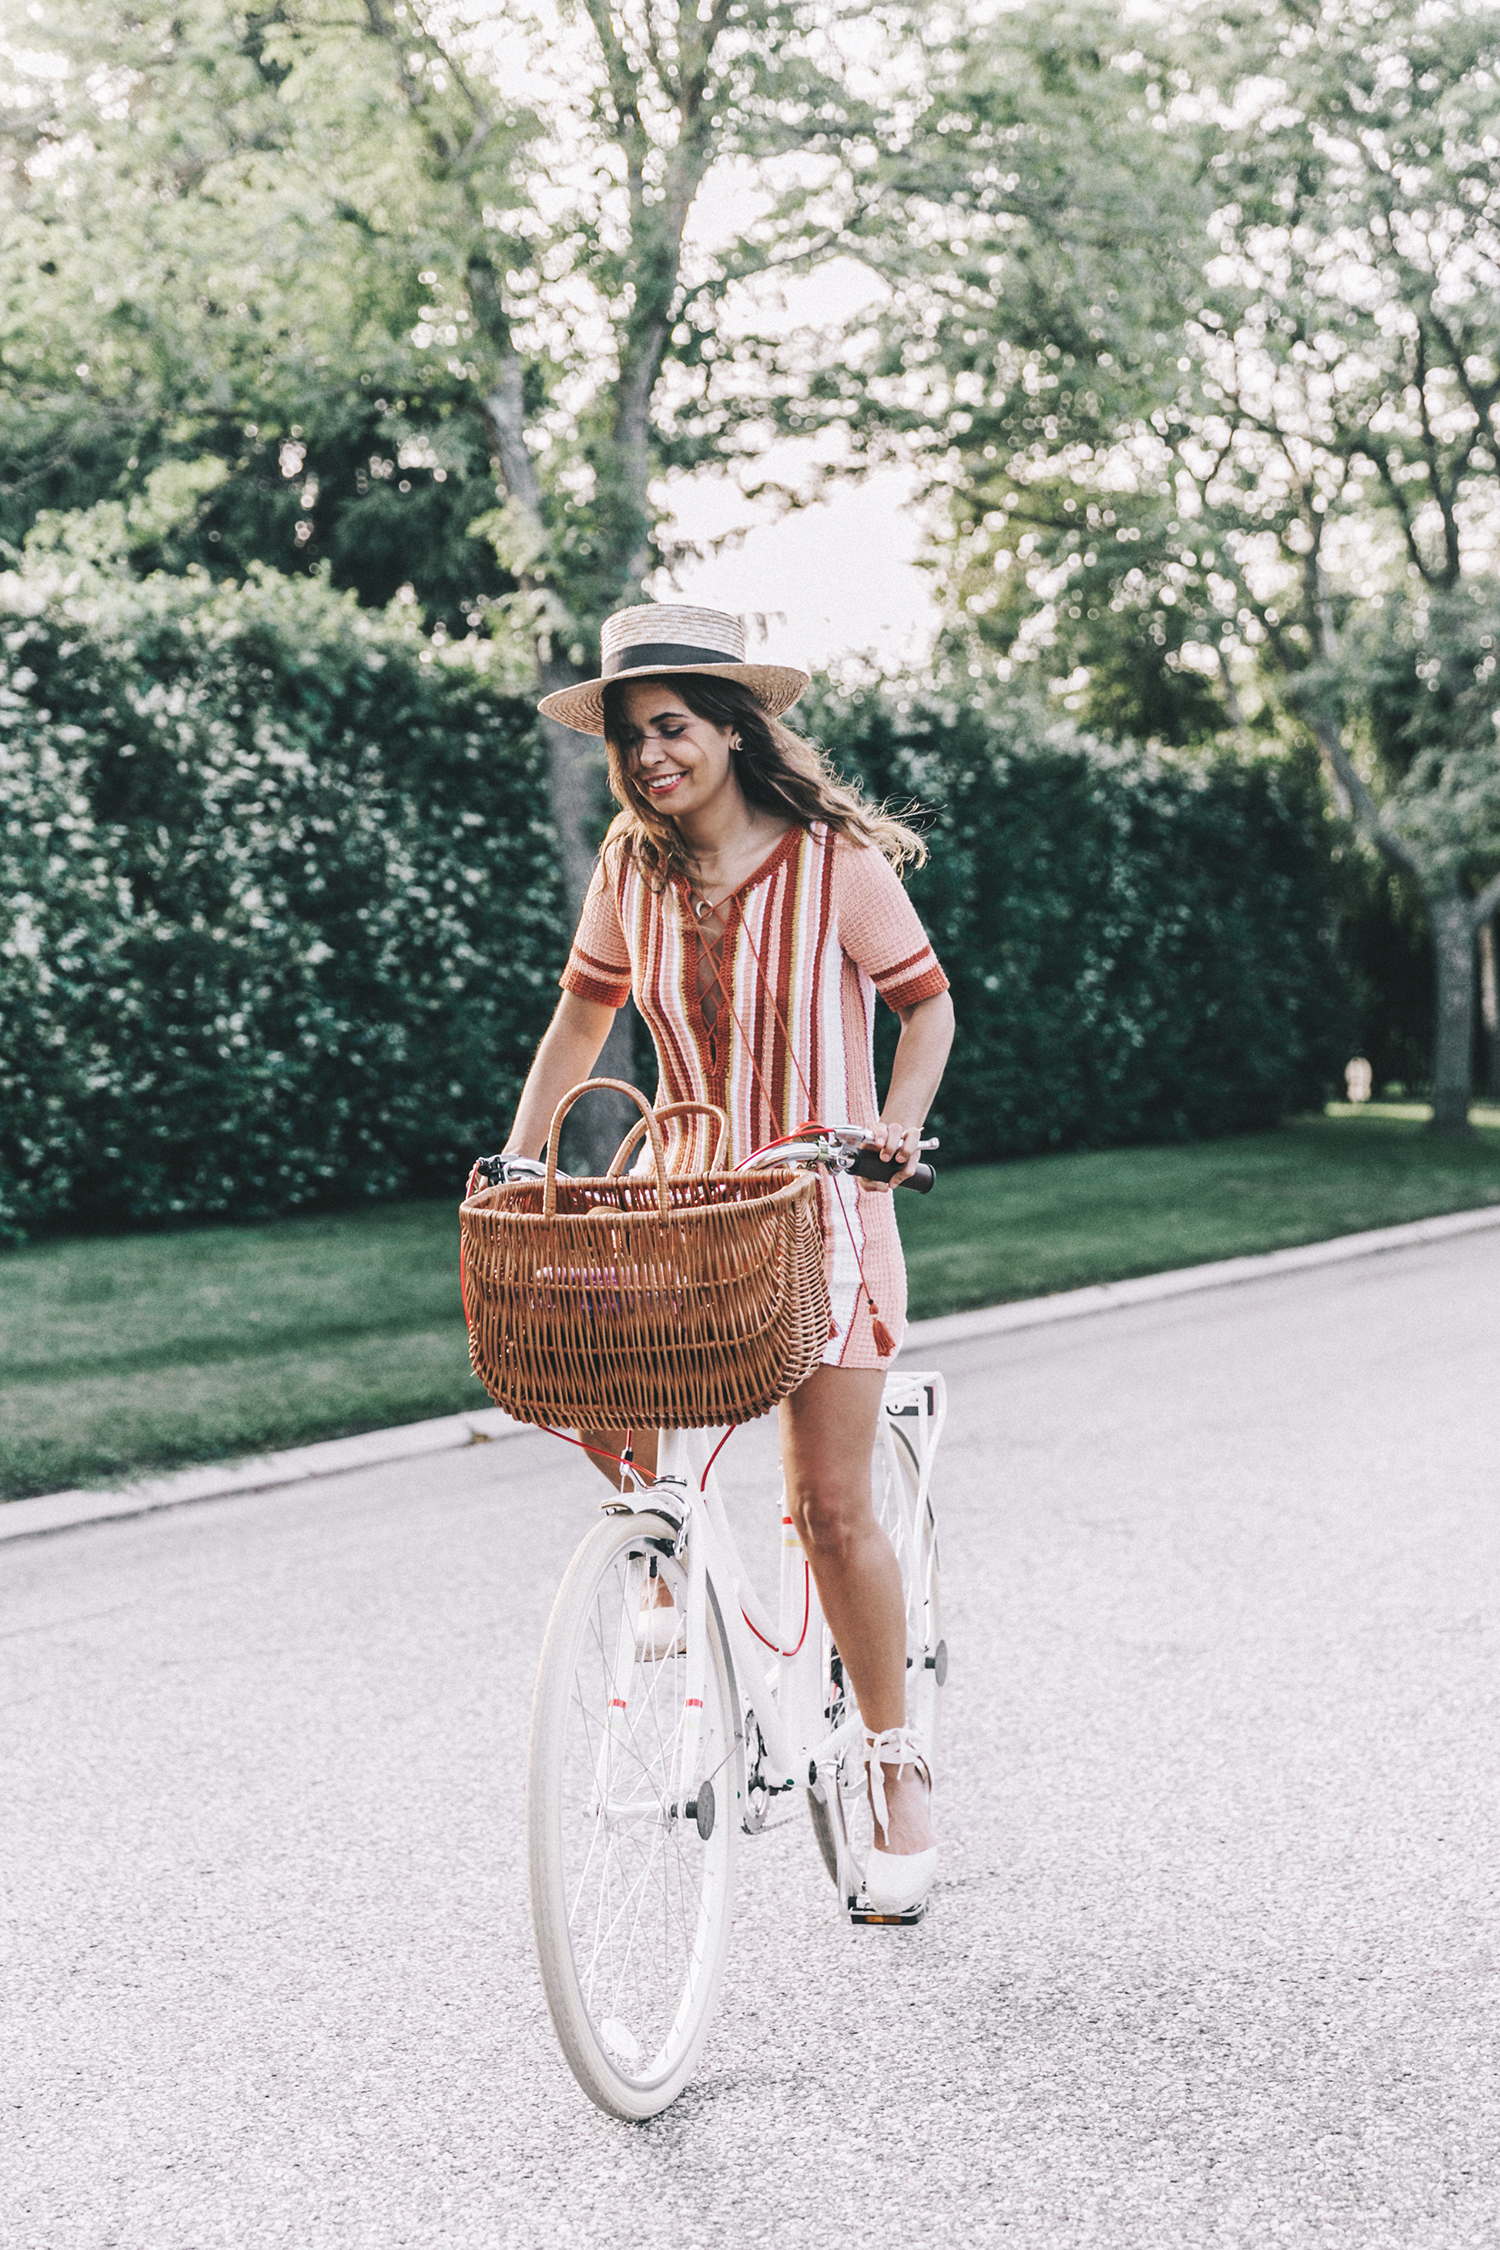 Revolve_in_The_Hamptons-Revolve_Clothing-Collage_Vintage-Free_People_Lace_Dress-Knitted_Dress-Soludos_Espadrilles-Canotier-Hat-Outfit-74